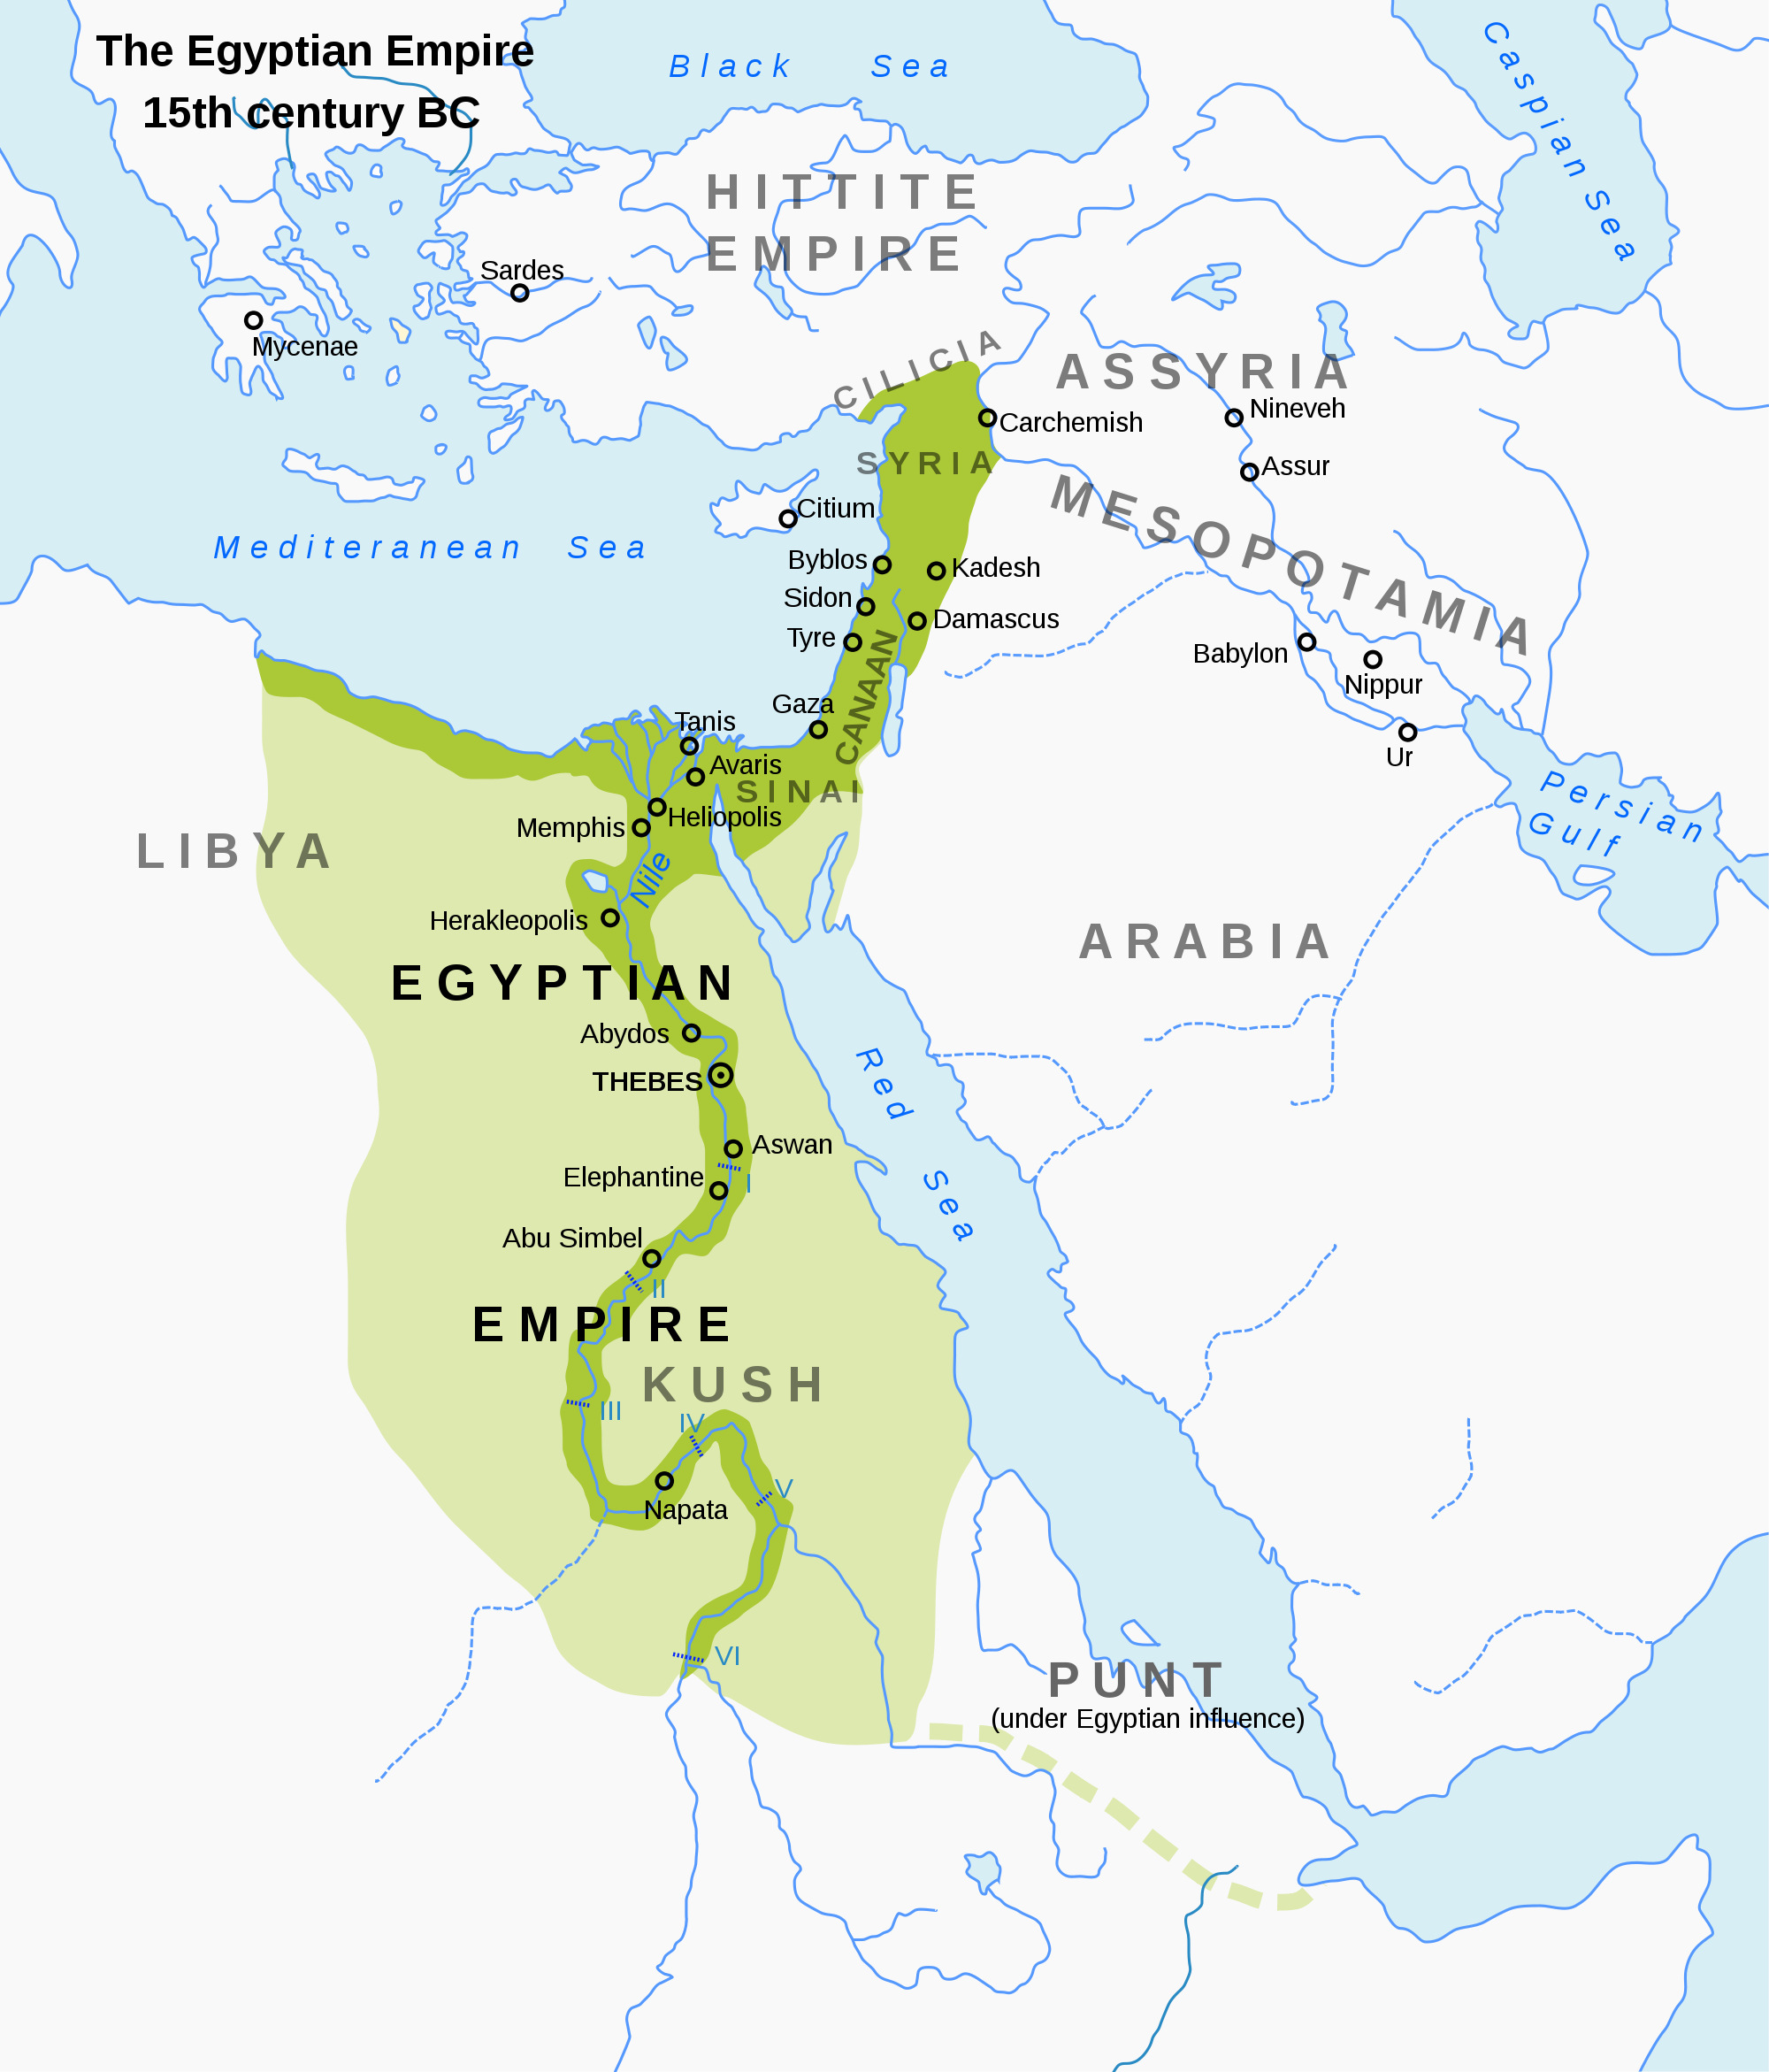 The Birth of the Nile River Civilization the Worlds First